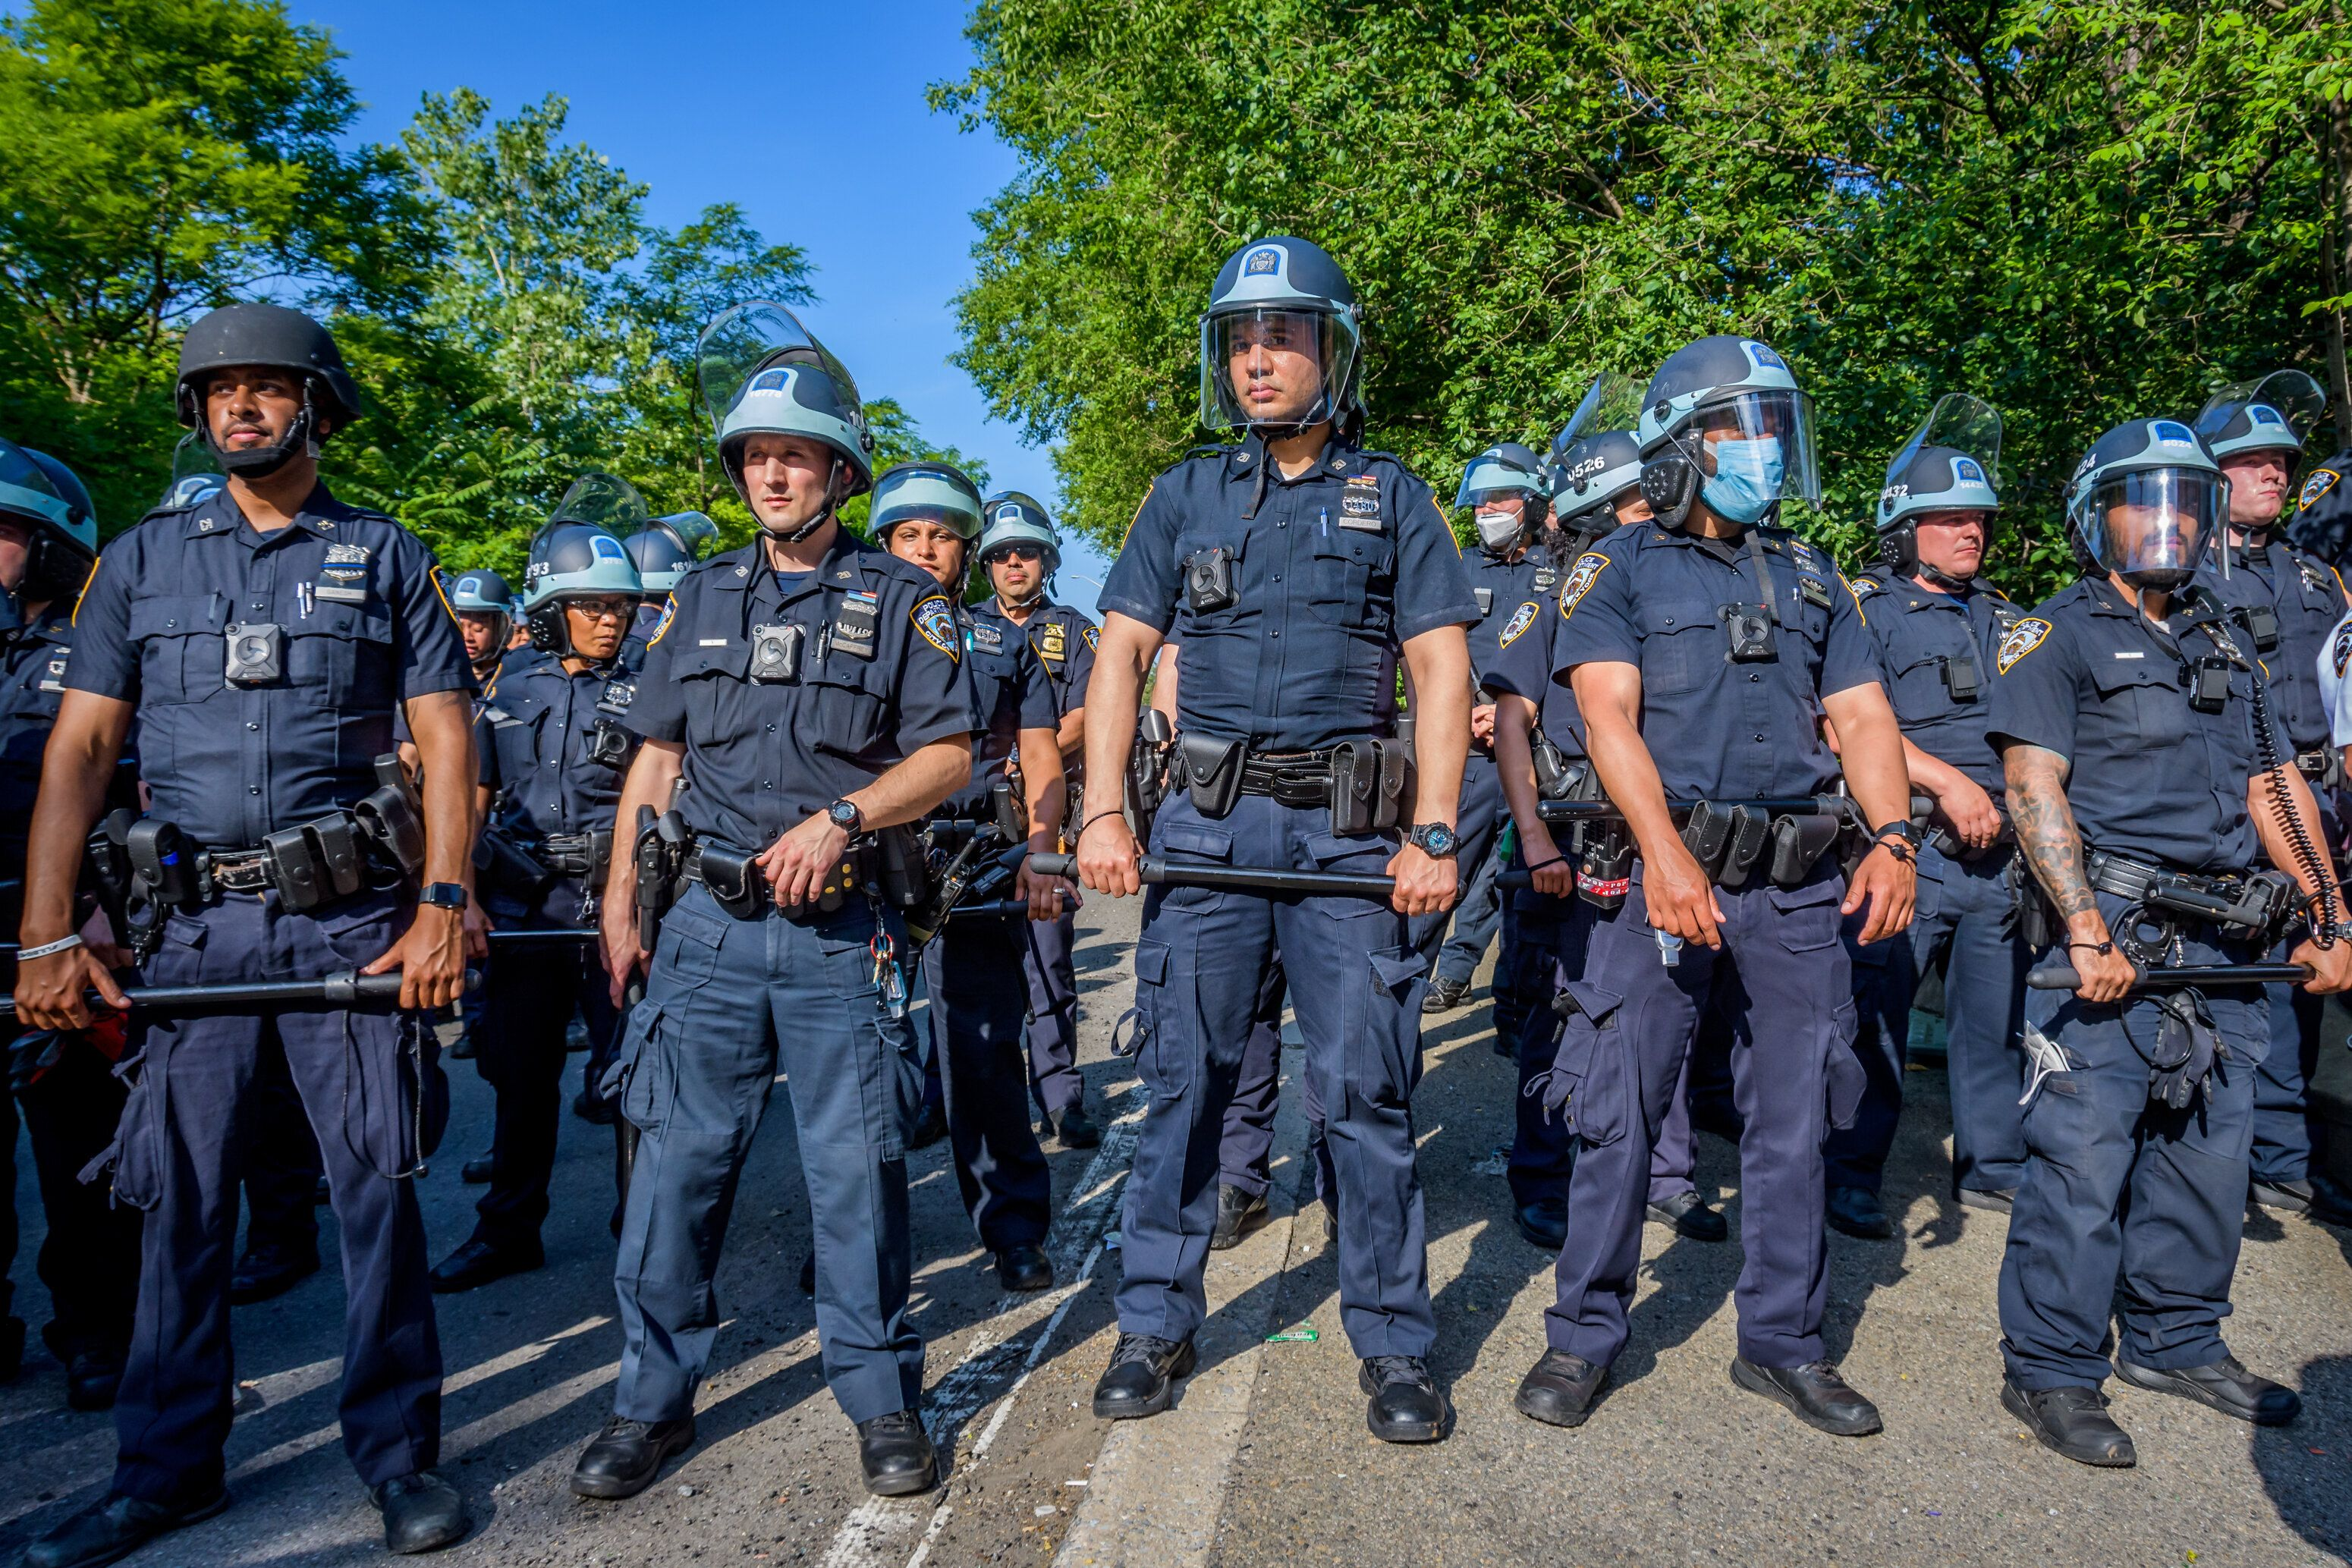 Police at a protest in Brooklyn, New York, earlier this month.